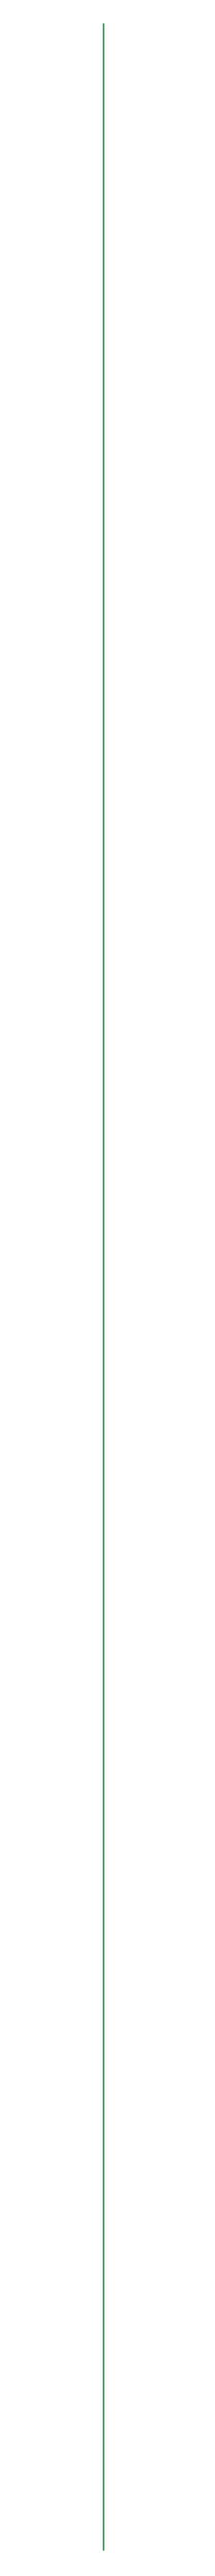 Line — Vertical.png